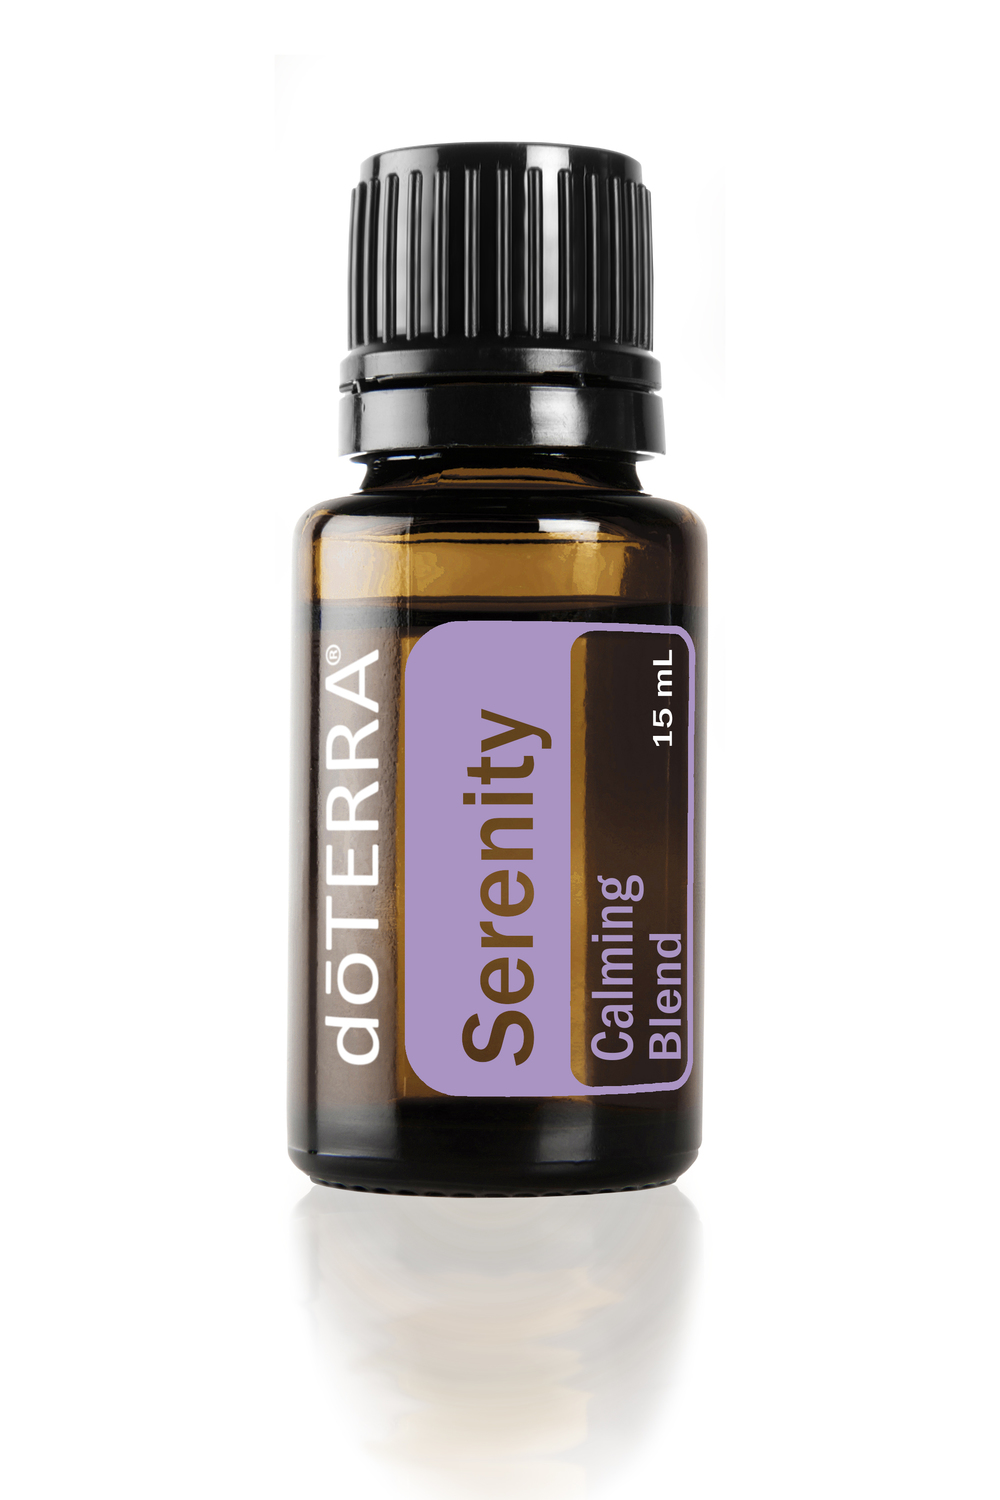 Serenity Essential Oils Calming Blend